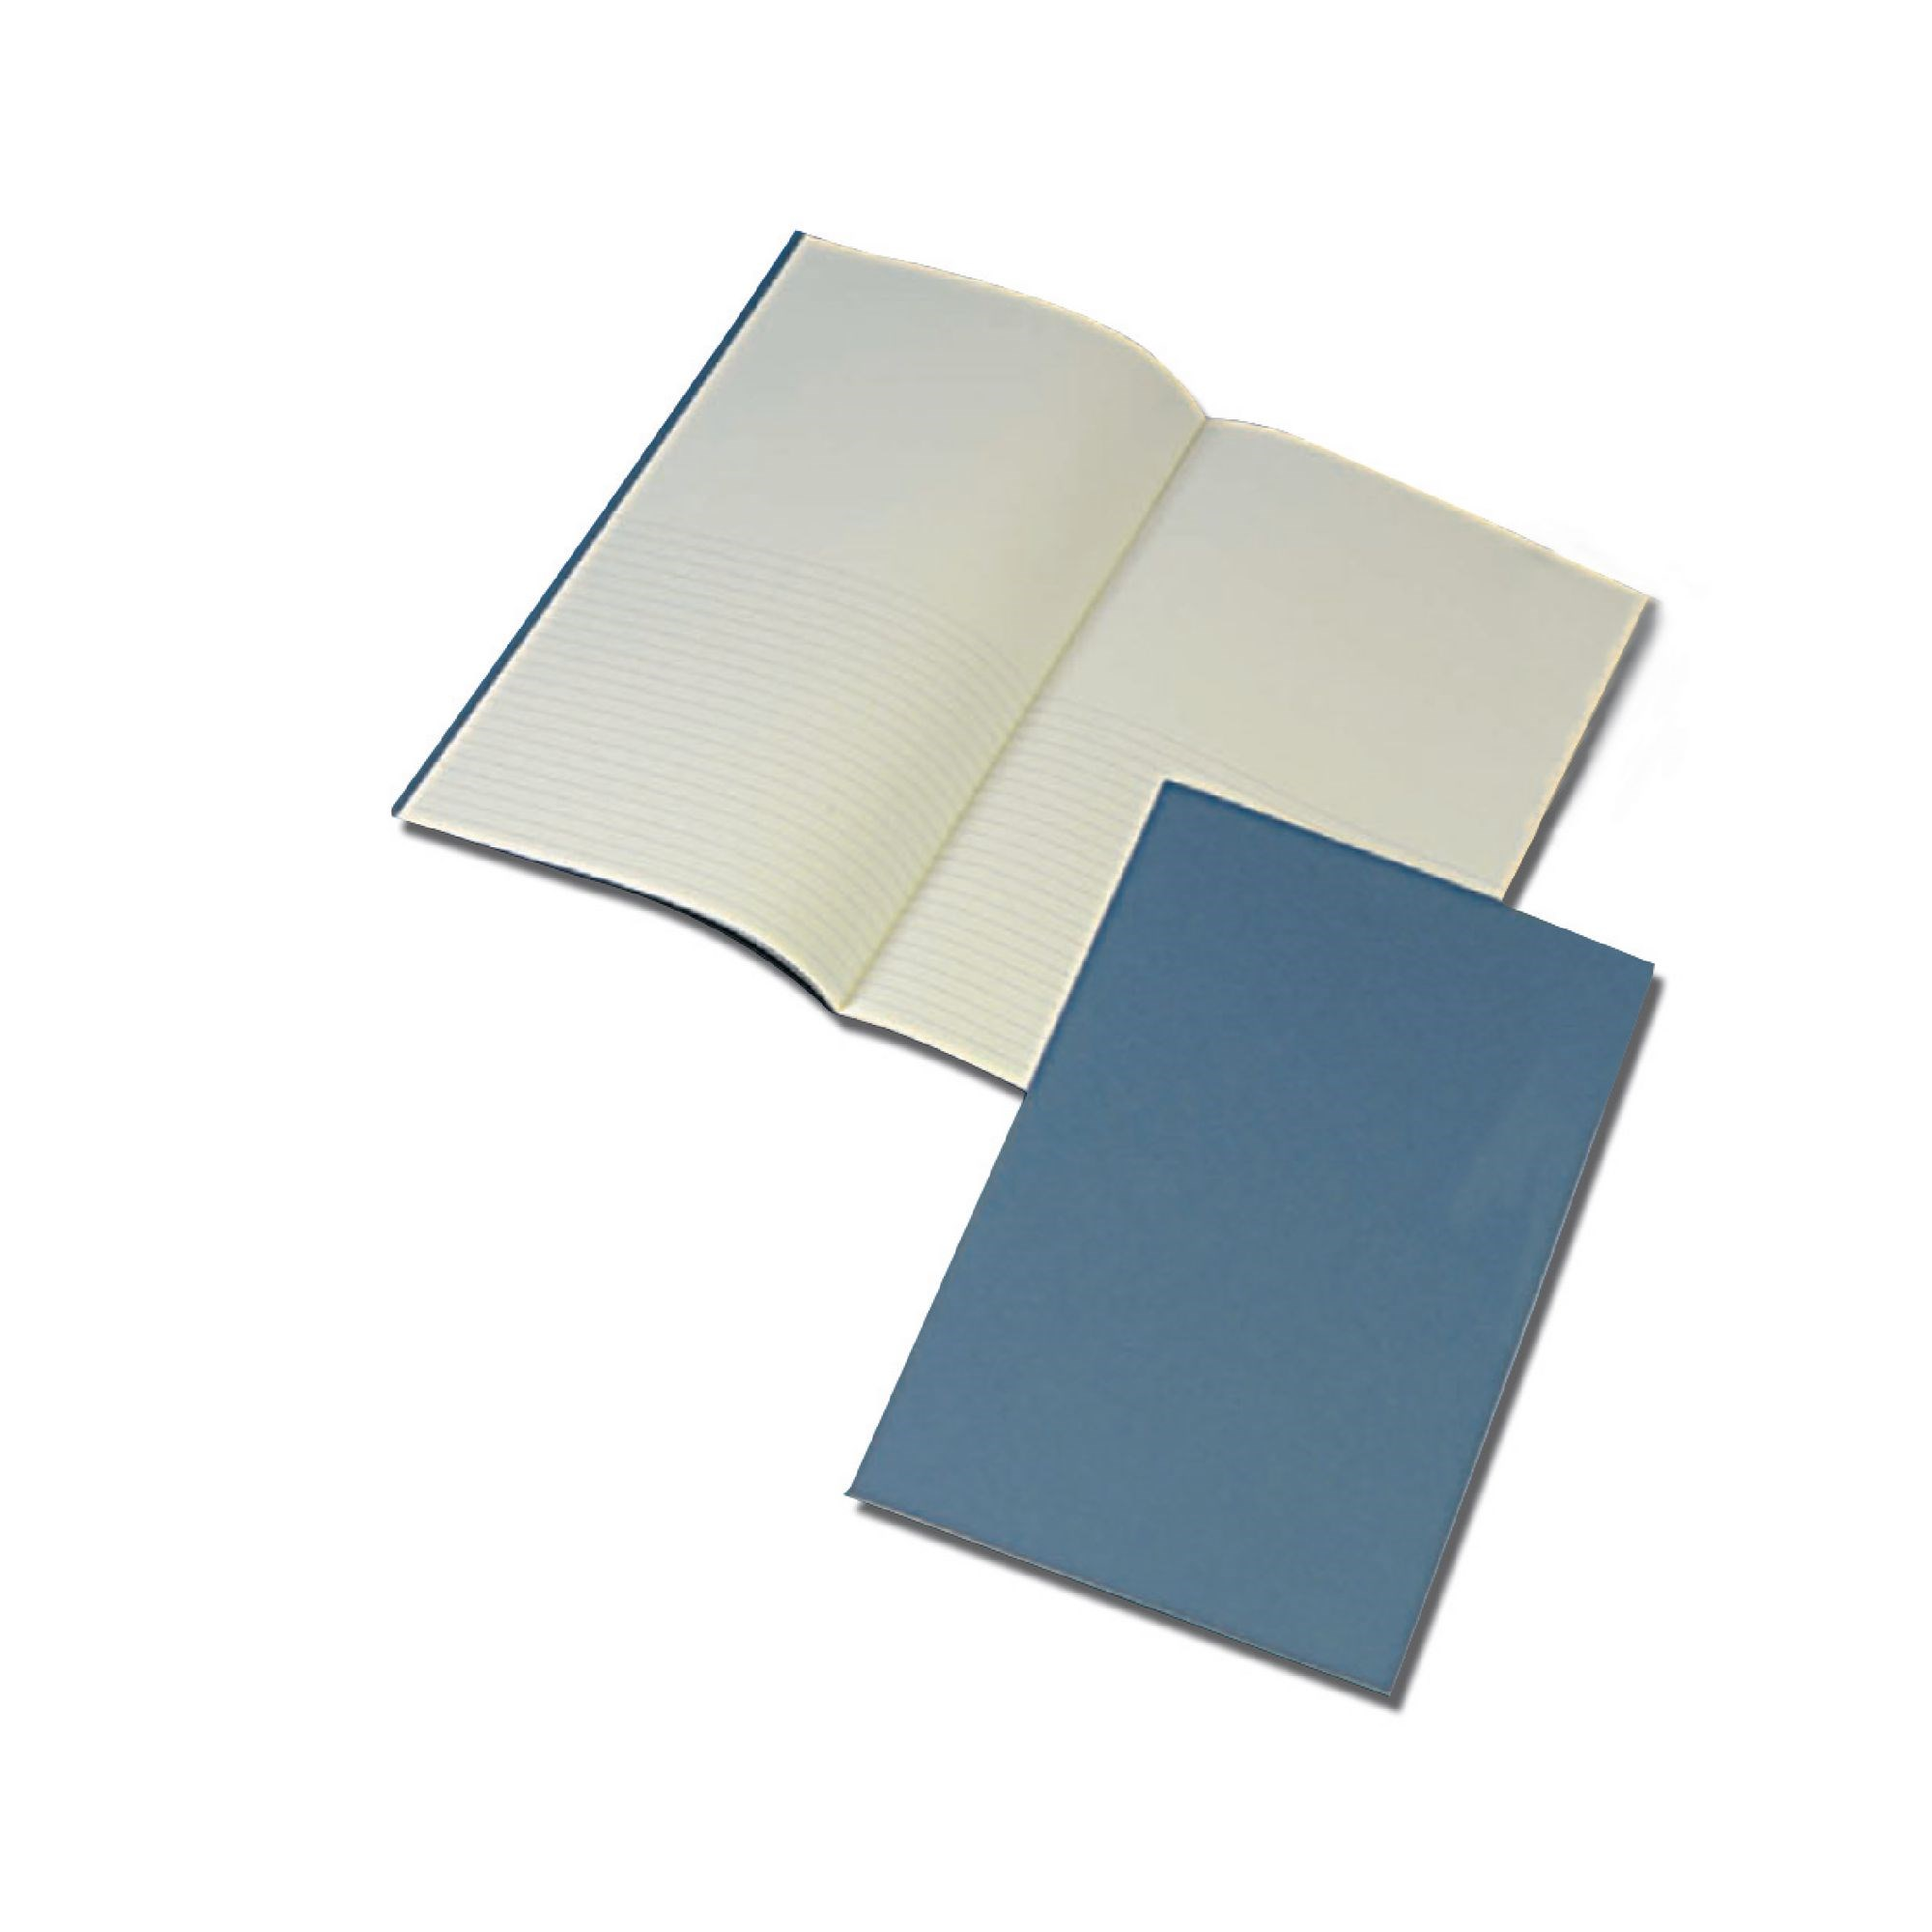 Classmates Blue 365 x 204mm Project Book 24 Pages 8mm Ruled/Plain Split (Pack of 12)